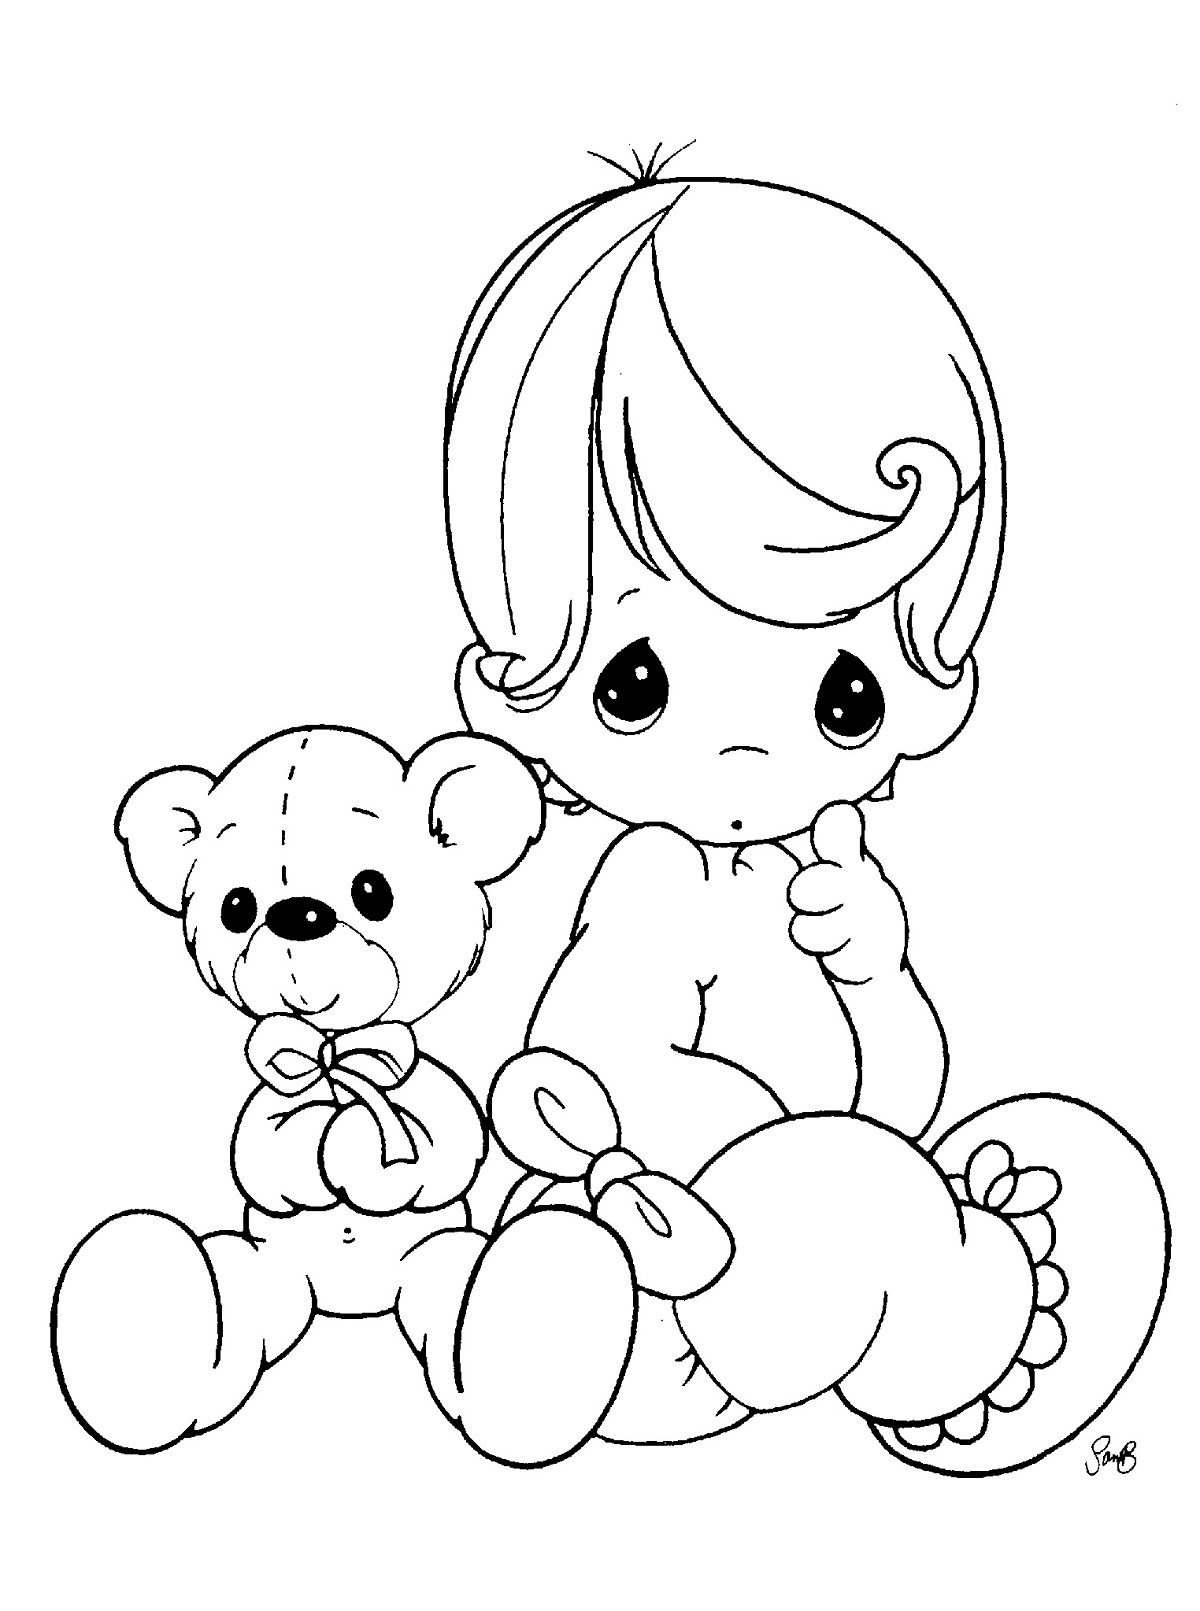 coloring sheets for toddler easy coloring pages for toddlers helps so percussion for sheets coloring toddler